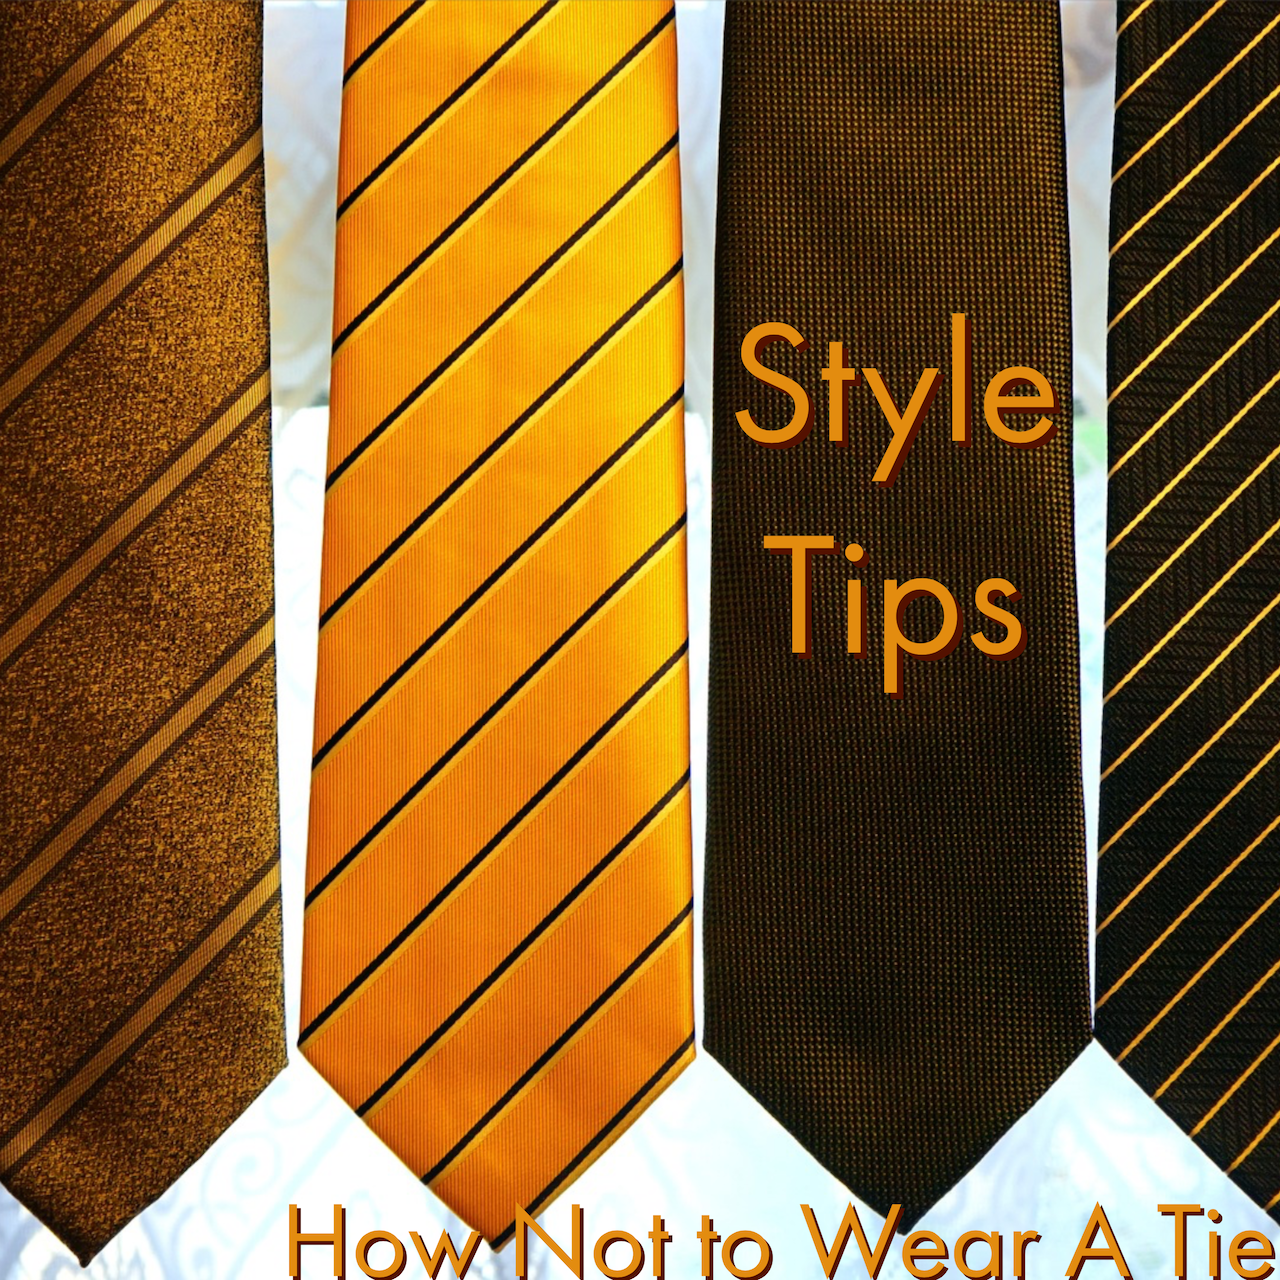 How not to wear a tie